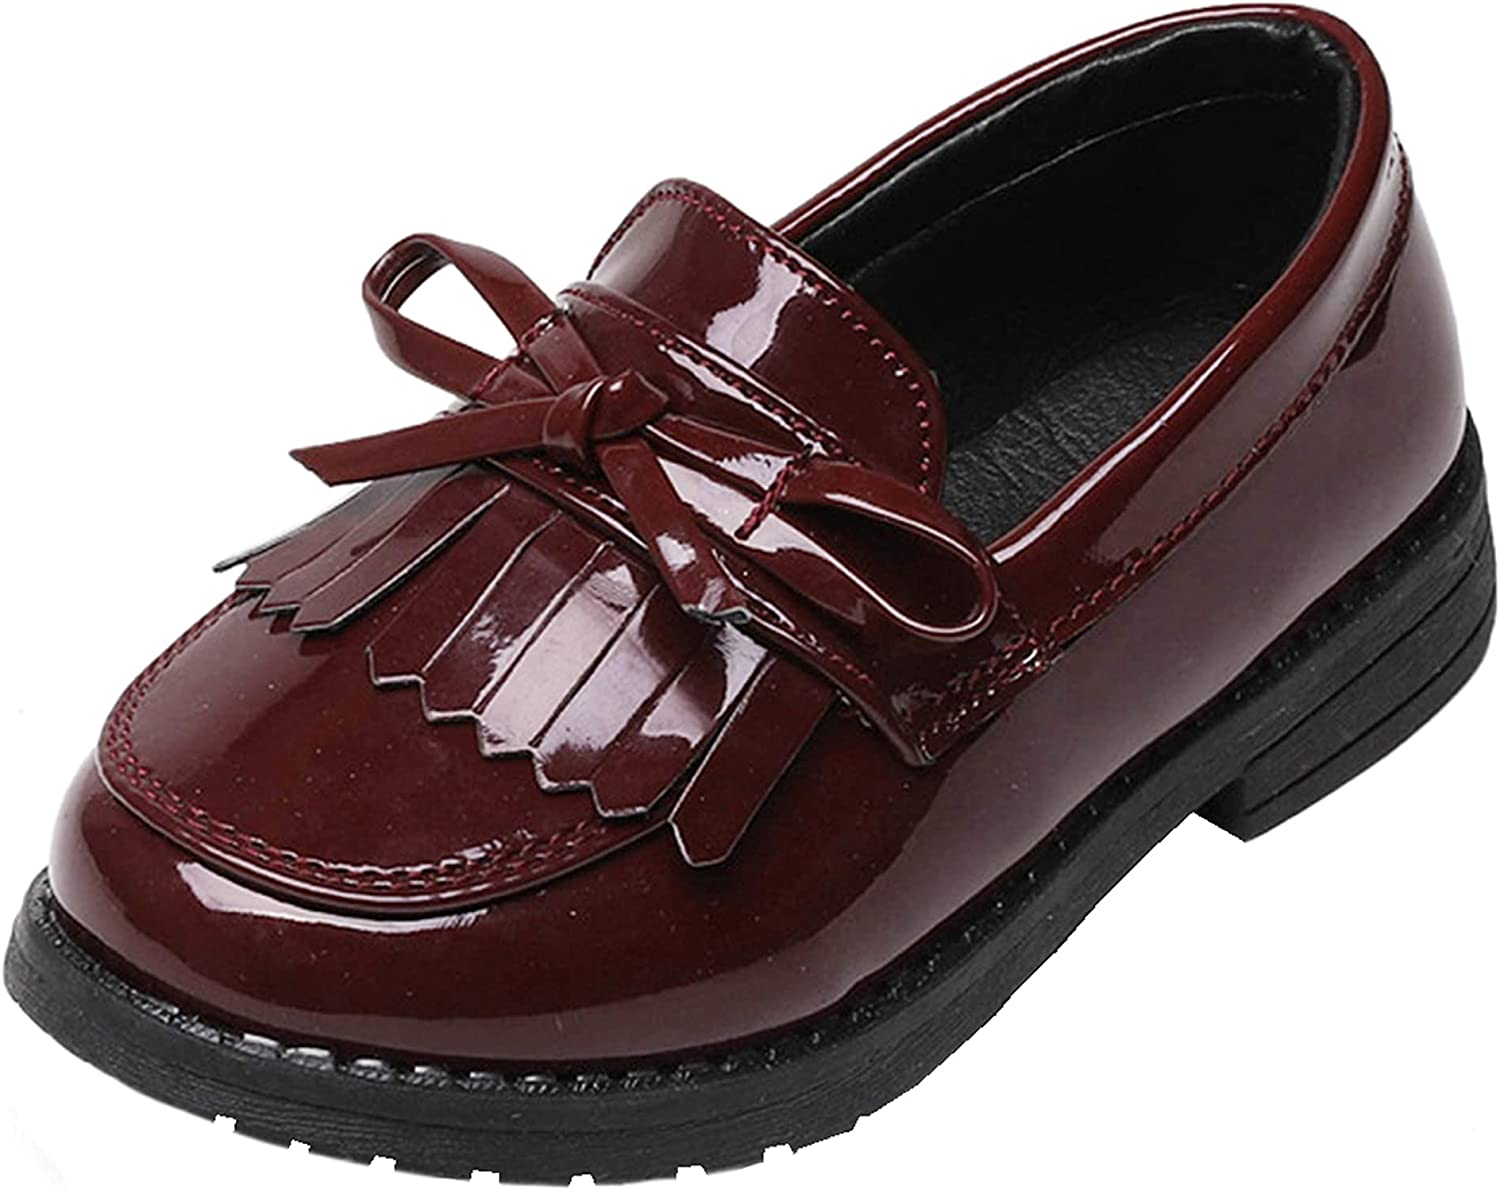 WUIWUIYU Girls Detroit Super special price Mall Patent Leather Slip-On Loafers Bow Penny Ta Flats